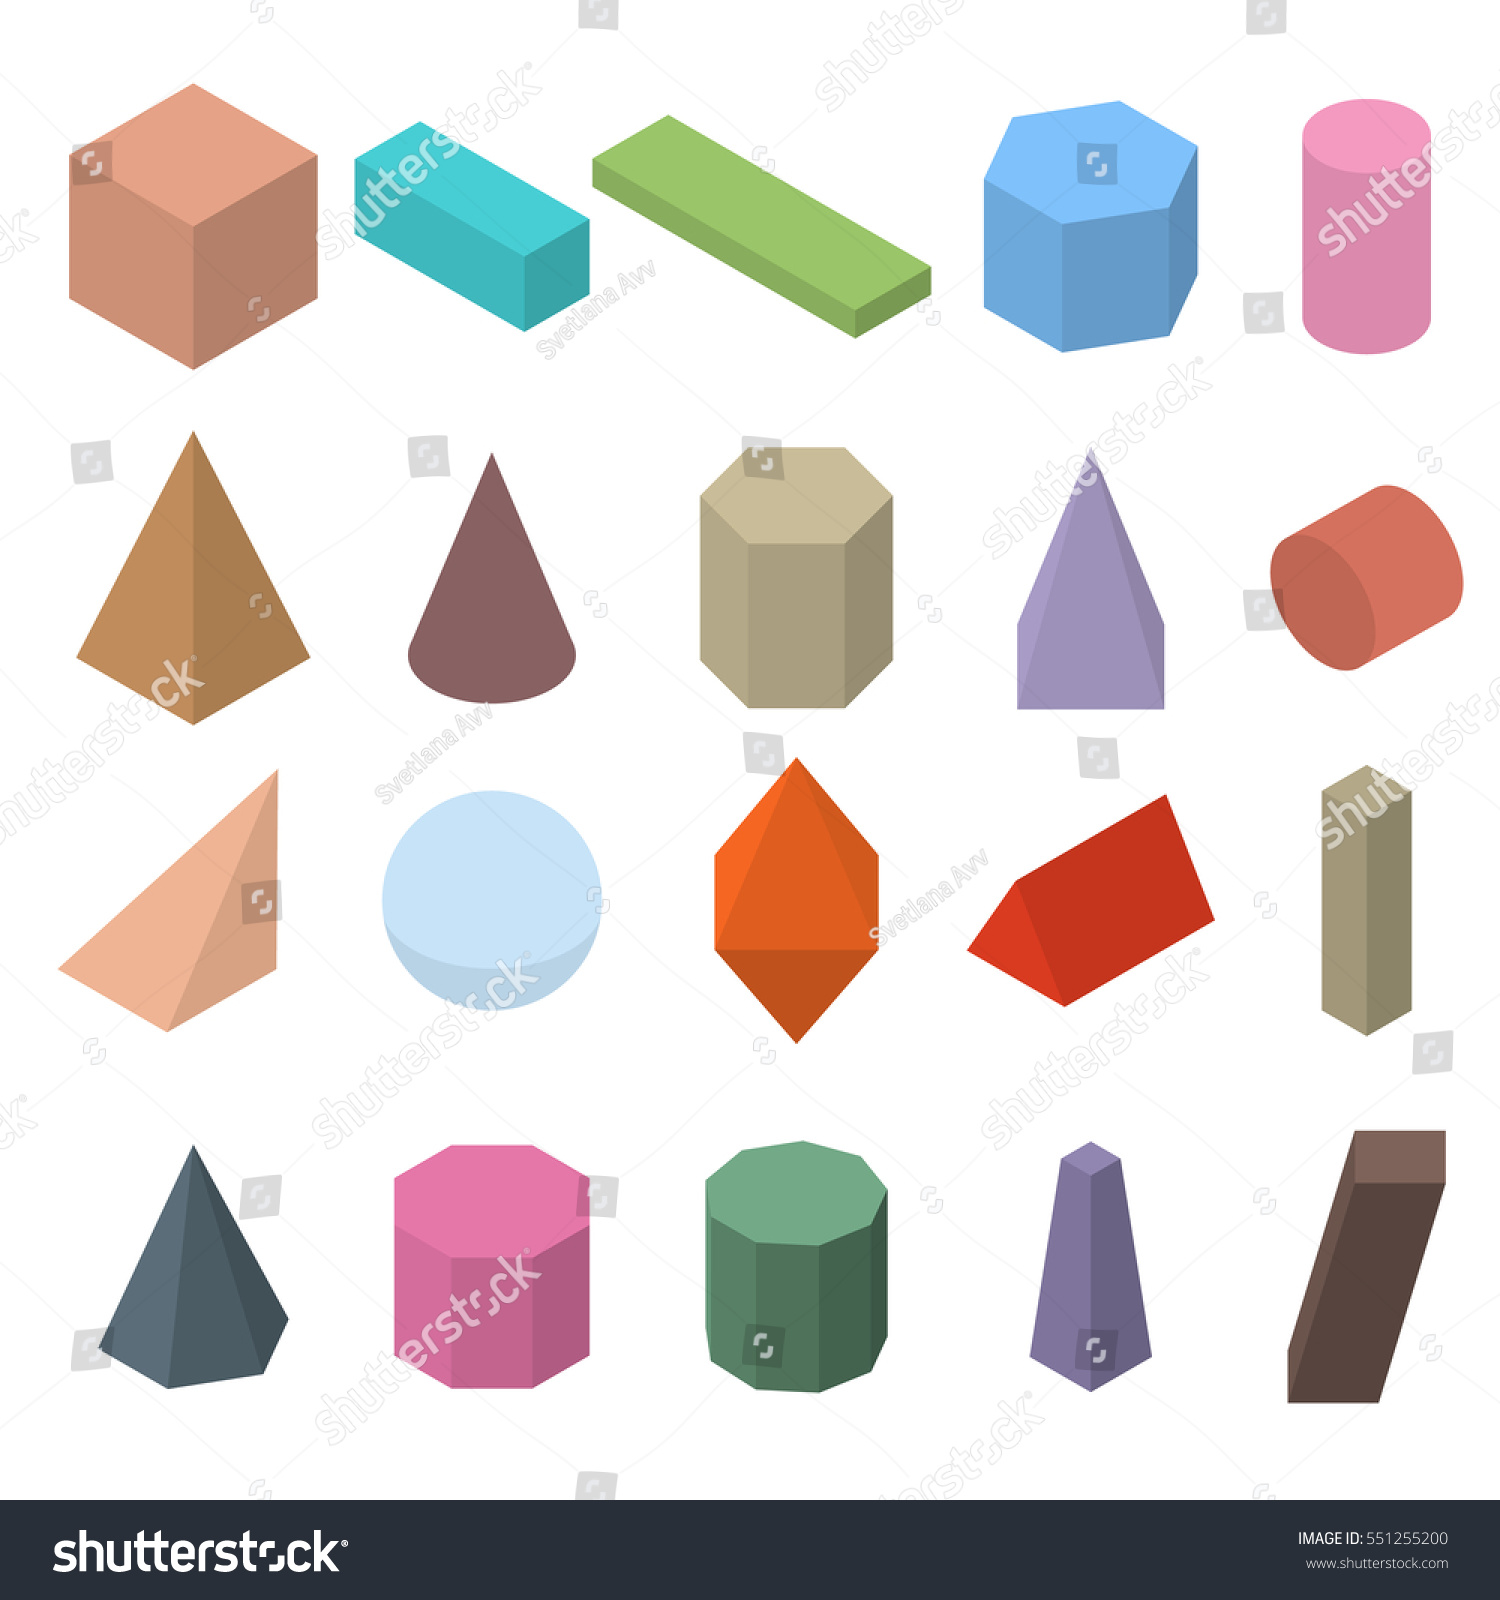 Set 3d geometric shapes isometric views stock vector 551255200 set of 3d geometric shapes isometric views the science of geometry and math buycottarizona Image collections